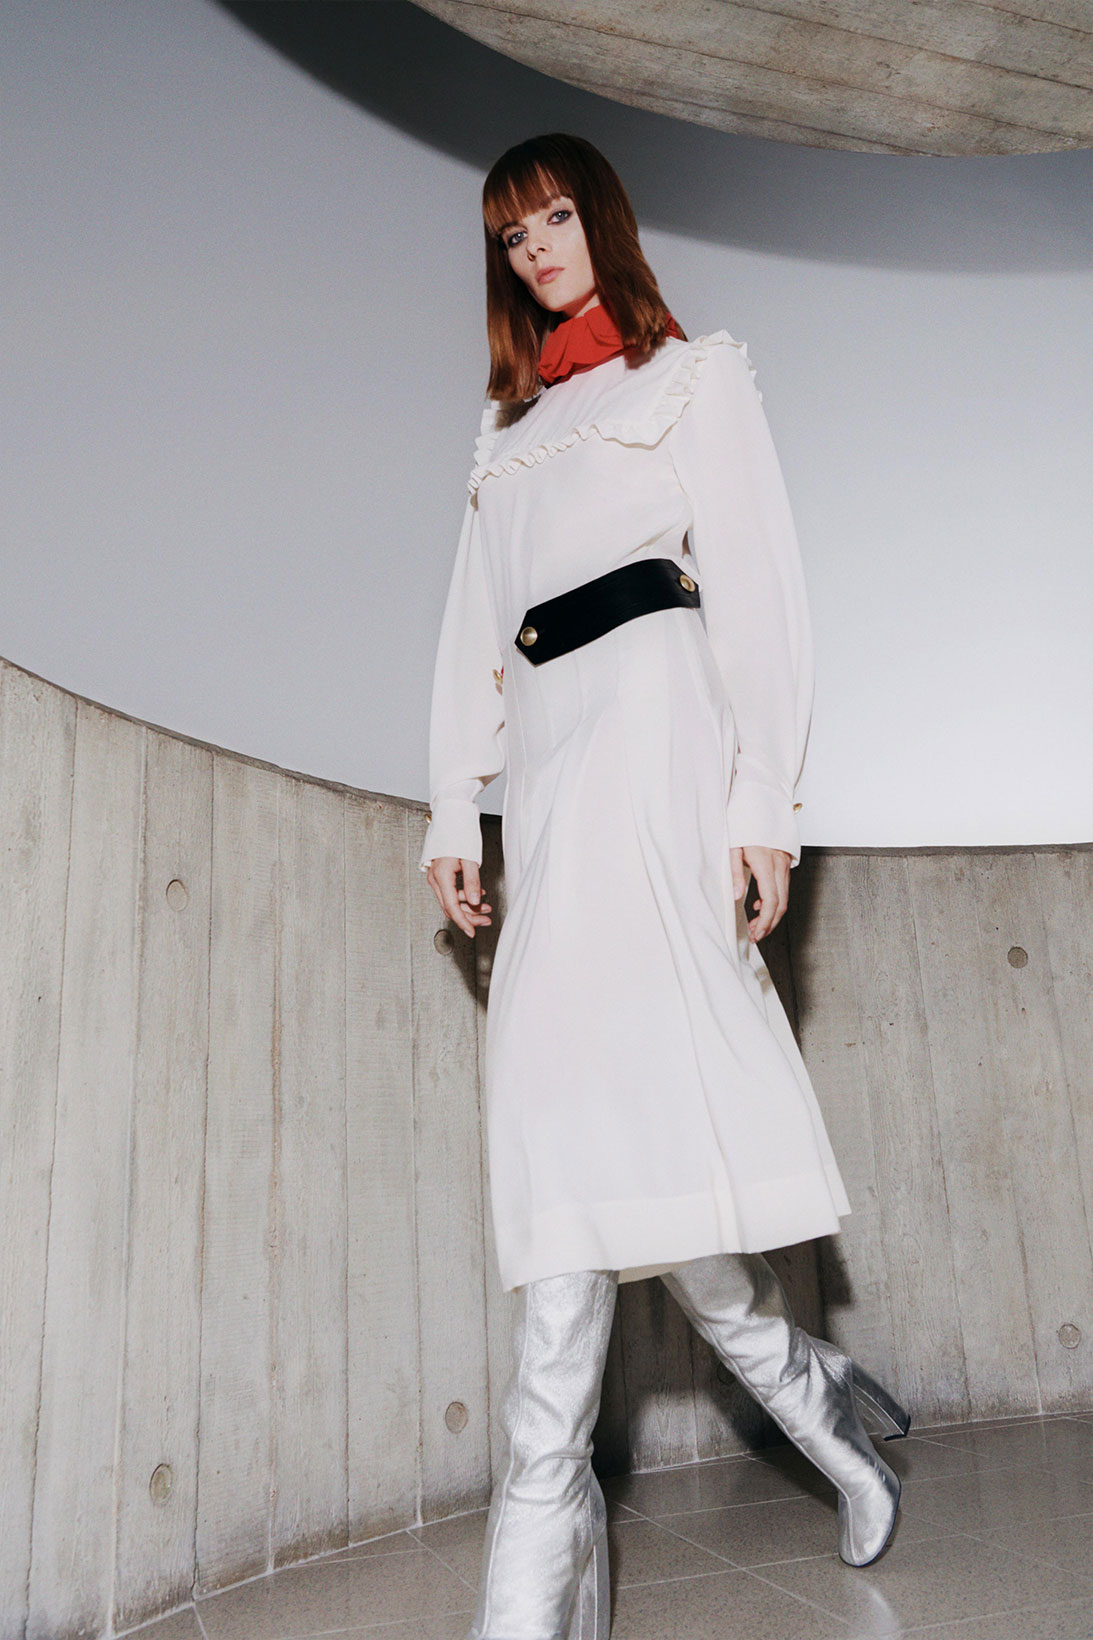 victoria beckham fall winter 2021 fw21 collection white dress metallic silver boots